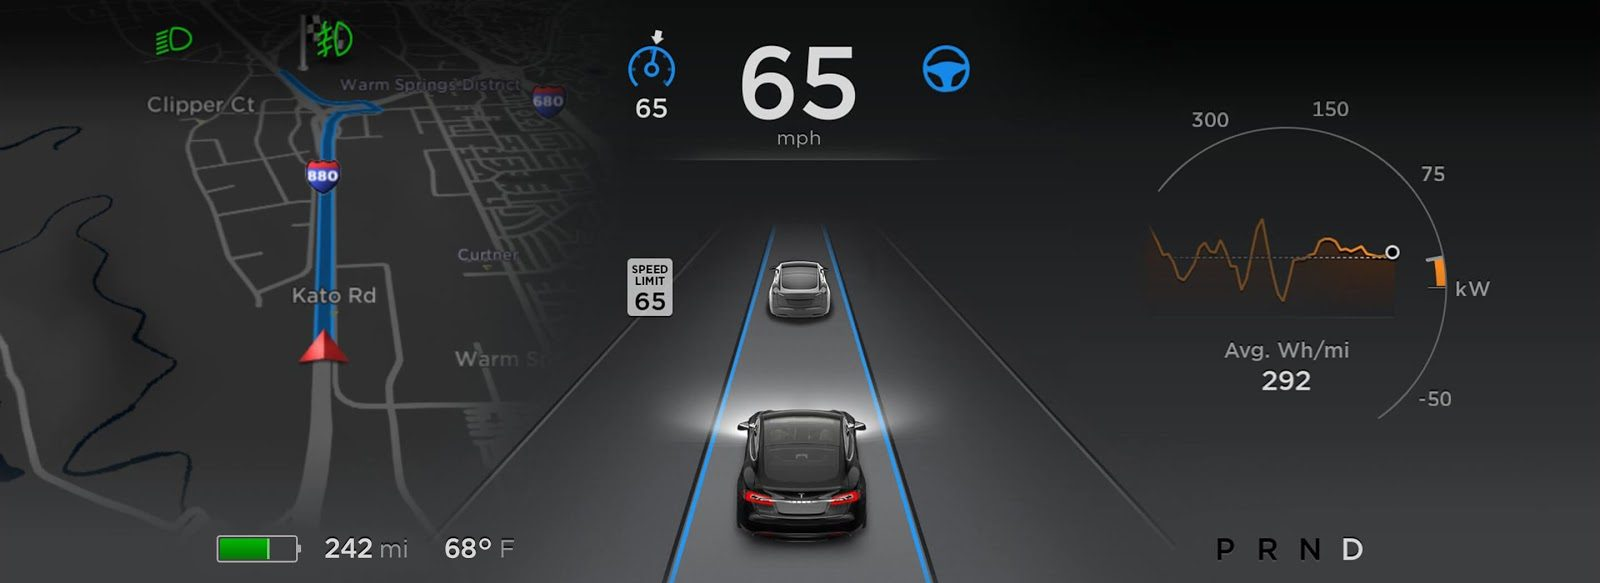 teslas-autopilot-will-get-a-significant-update-with-version-80-following-publ-109108_1